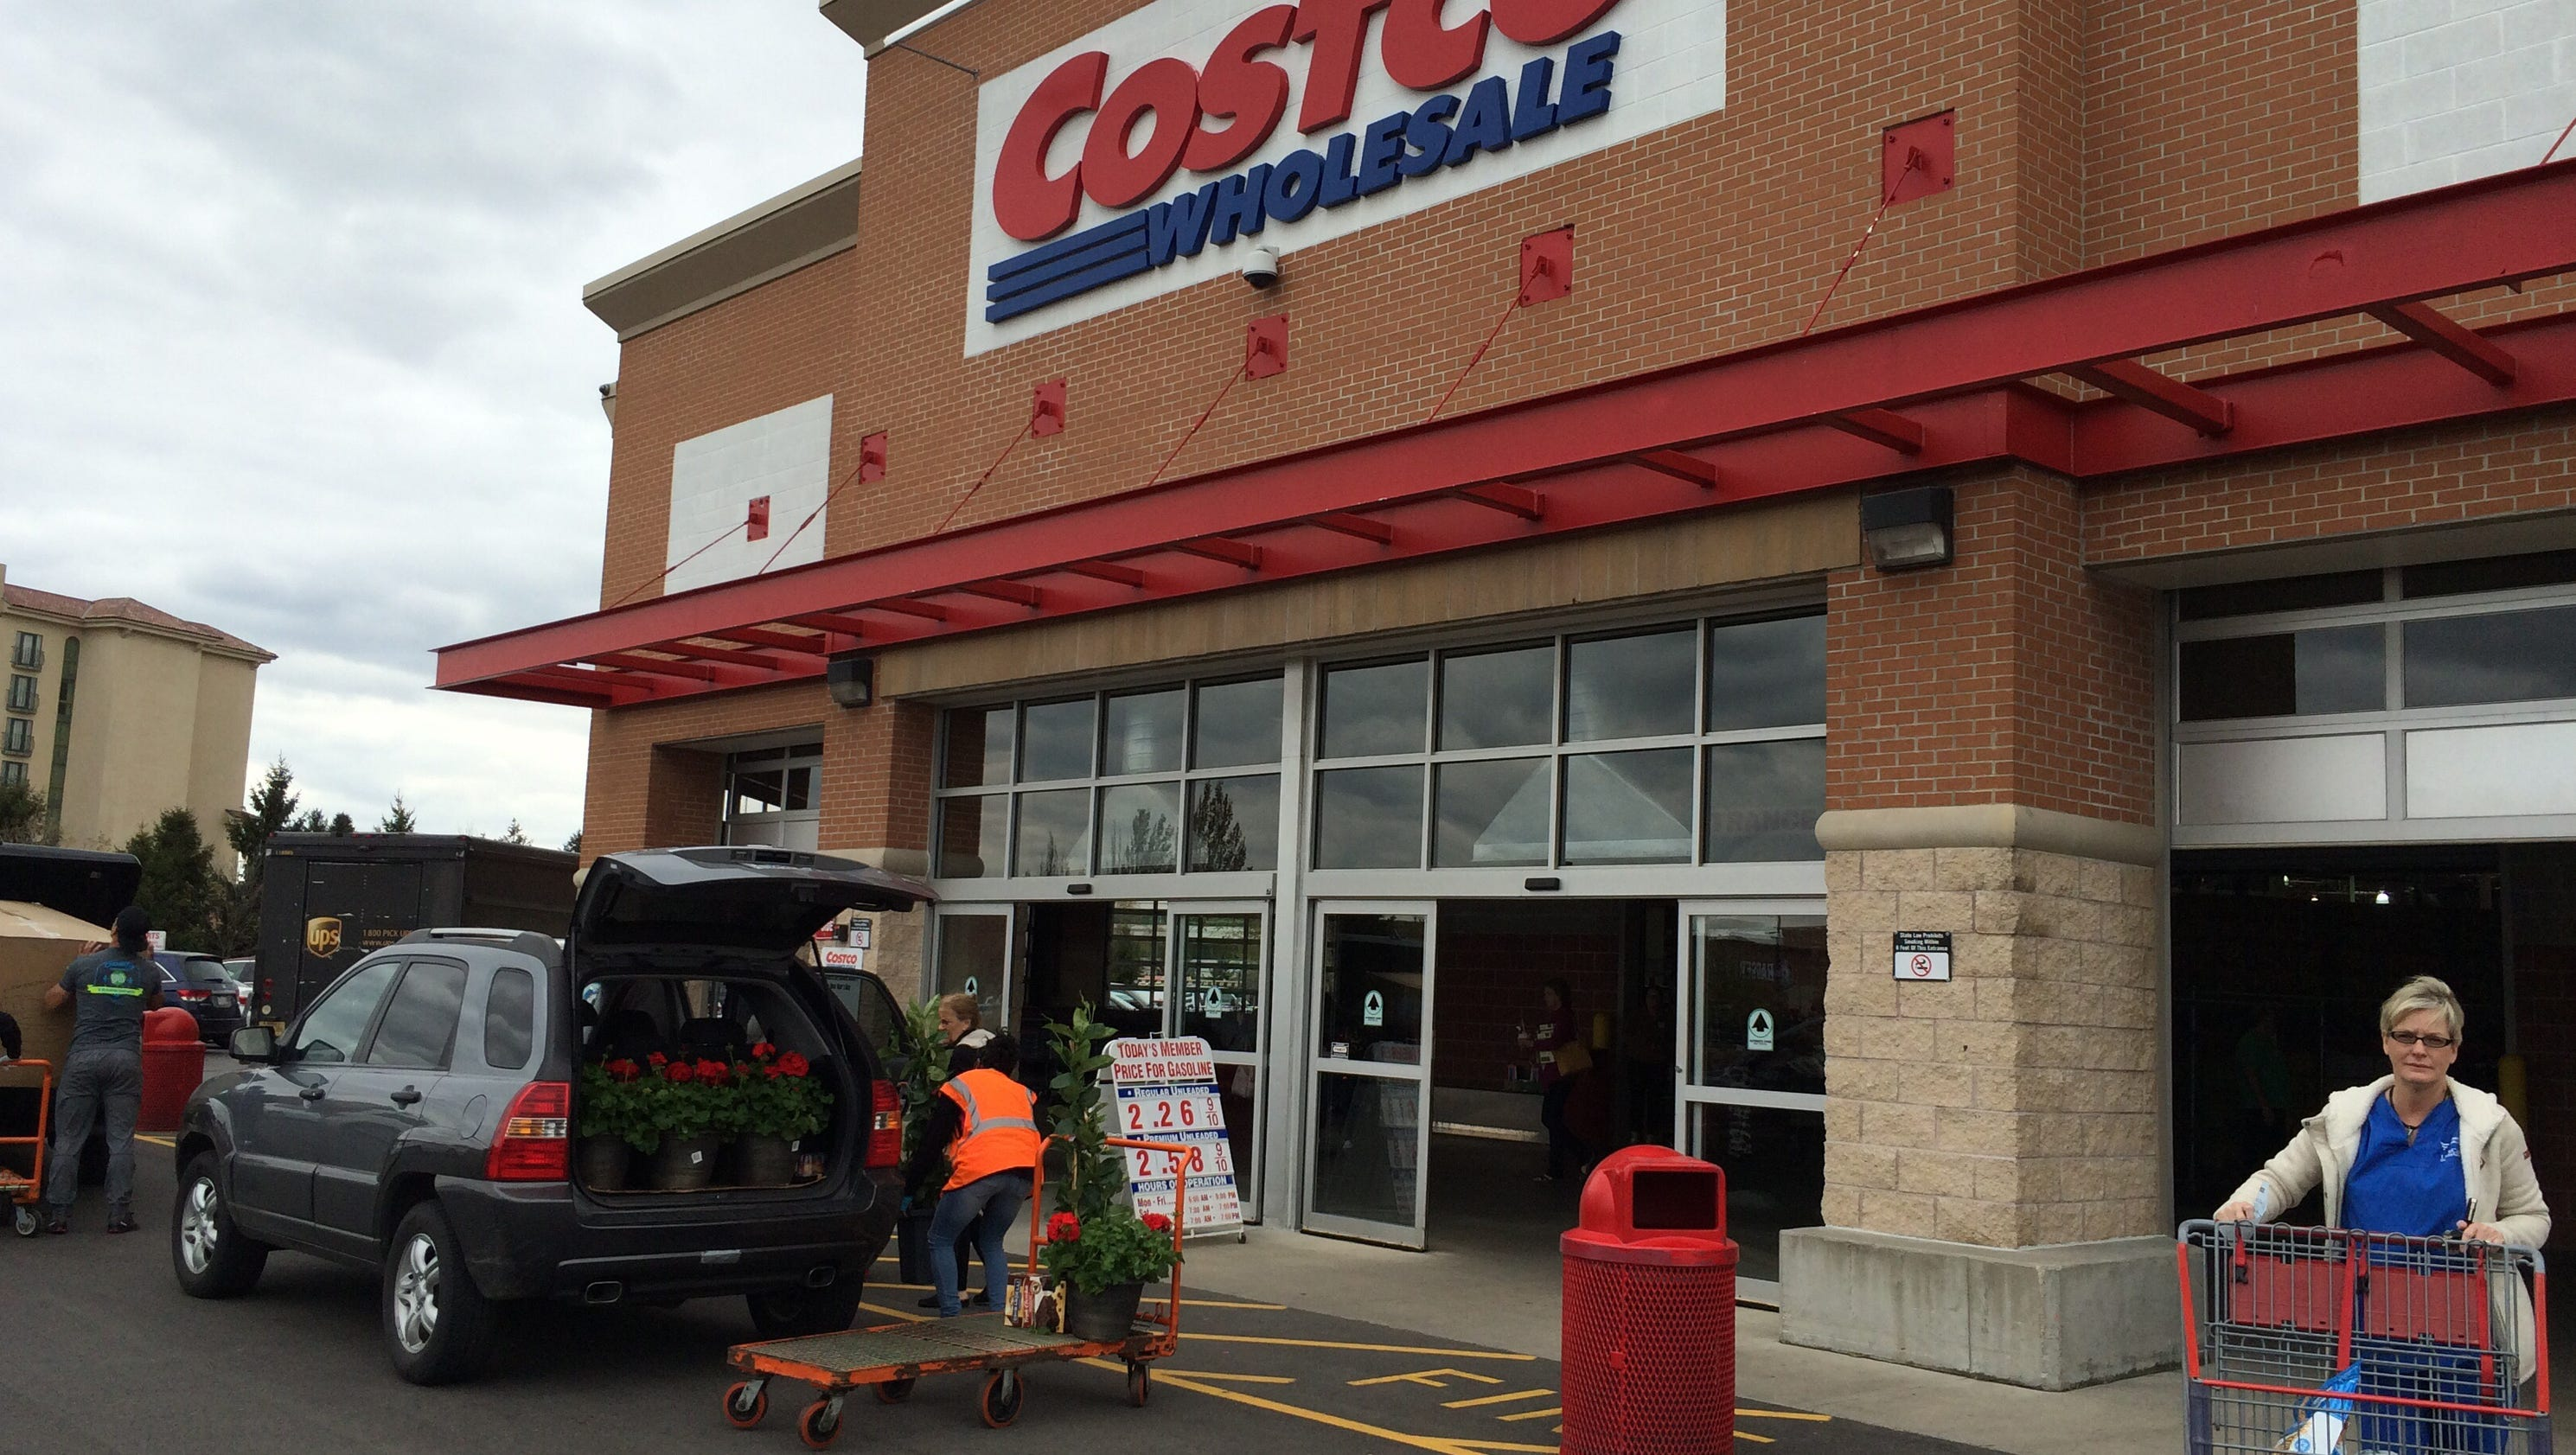 Costco Work From Home Jobs - Costco Wholesale Careers and Employment